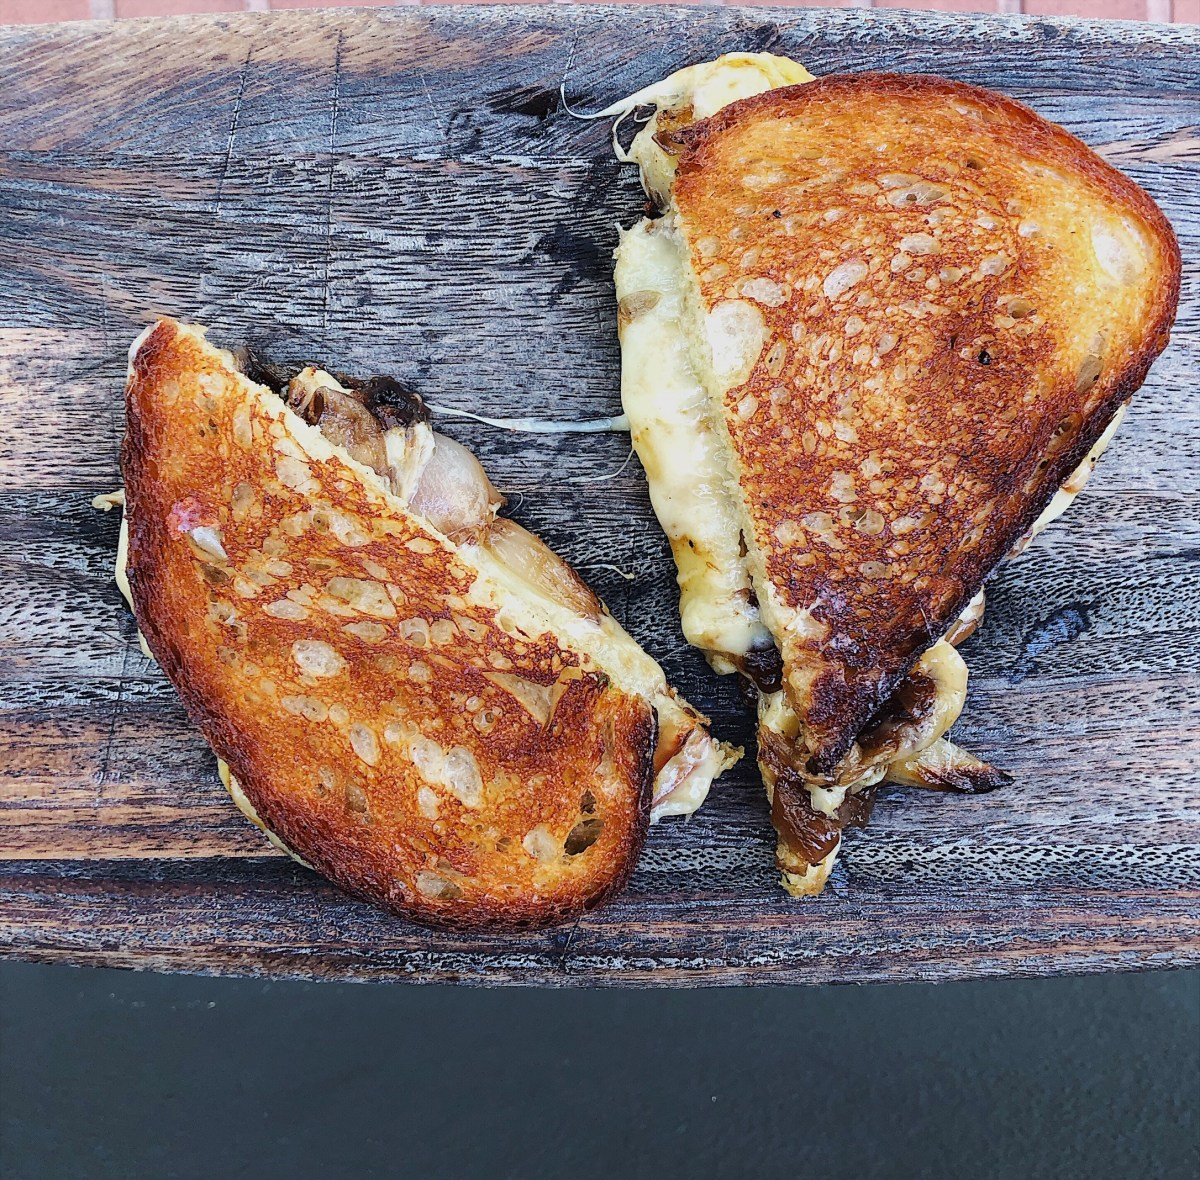 Tavern grilled cheese; Credit: Suzanne Lanza